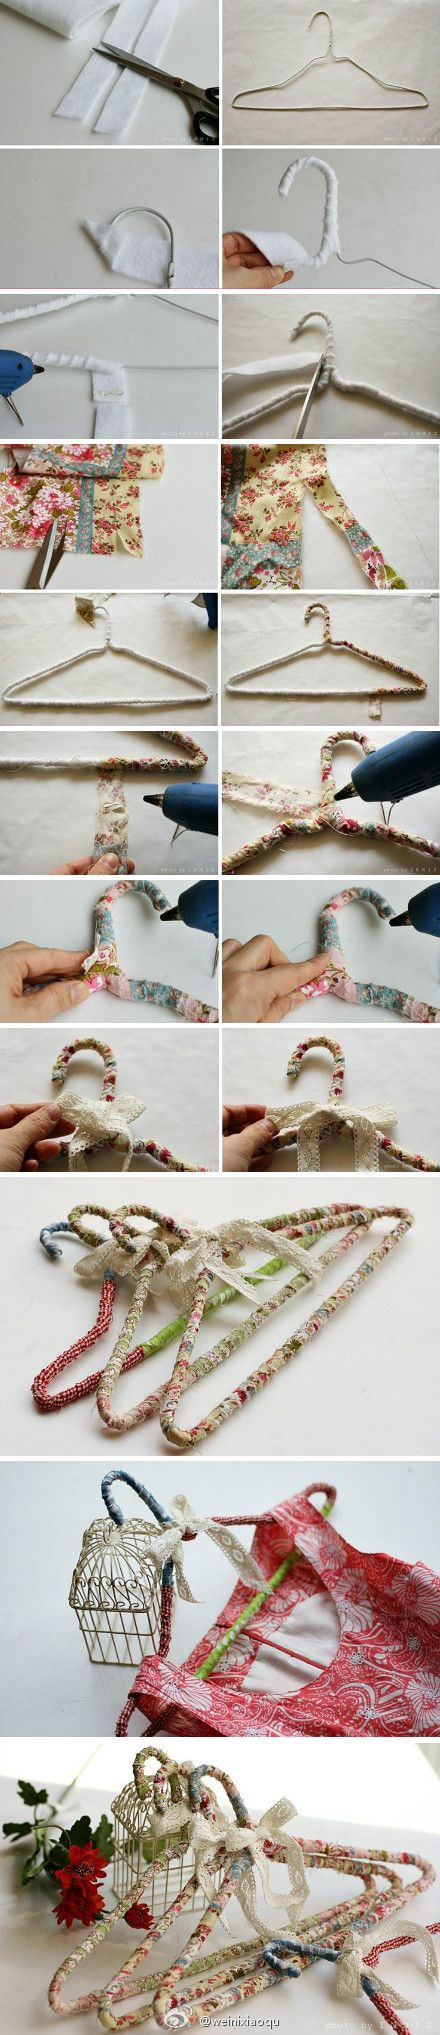 using Fabric Scraps to cover Cloth Hangers